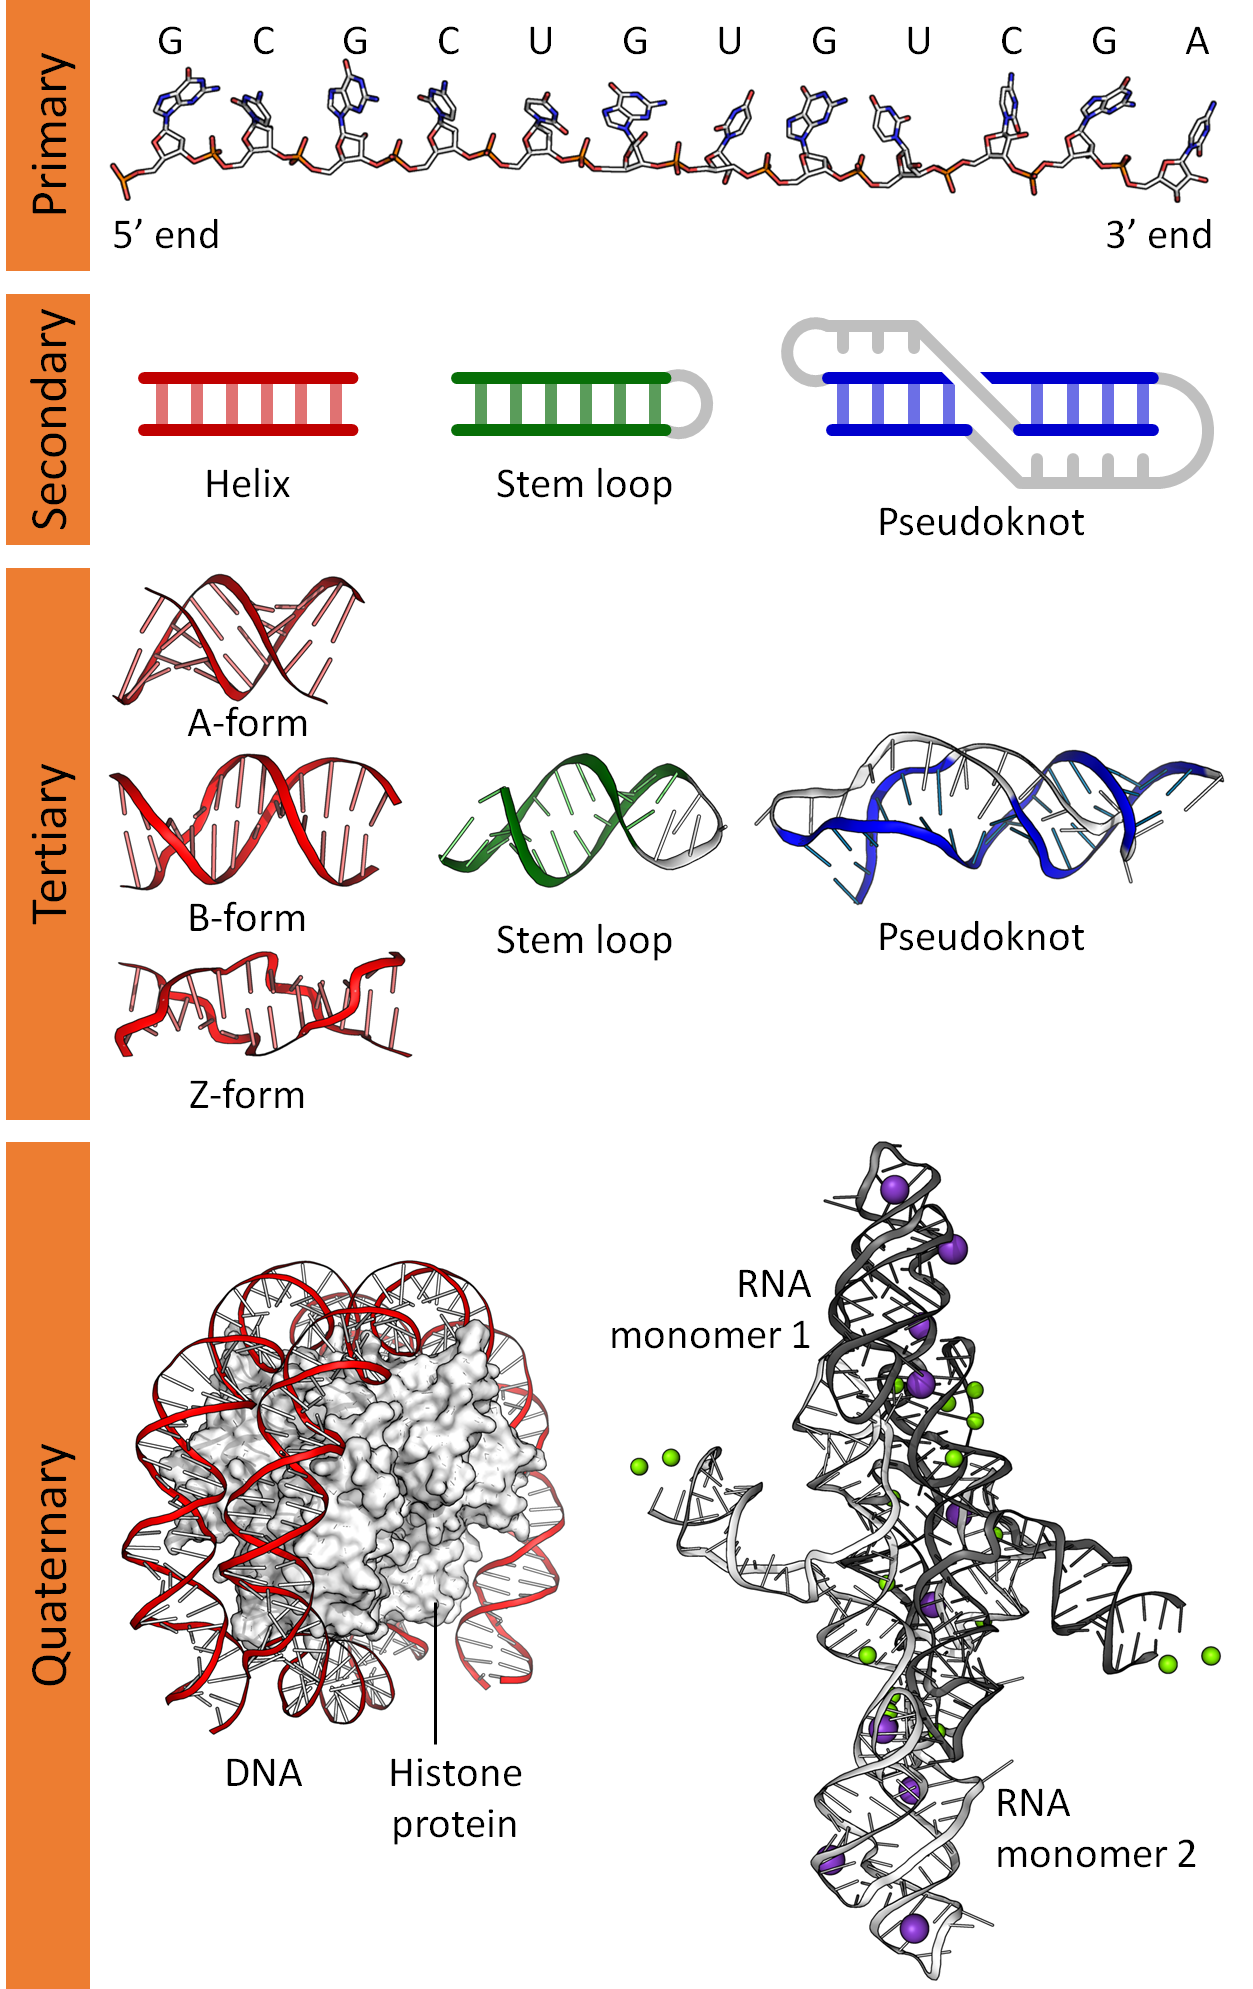 Nucleic acid structure - Wikipedia